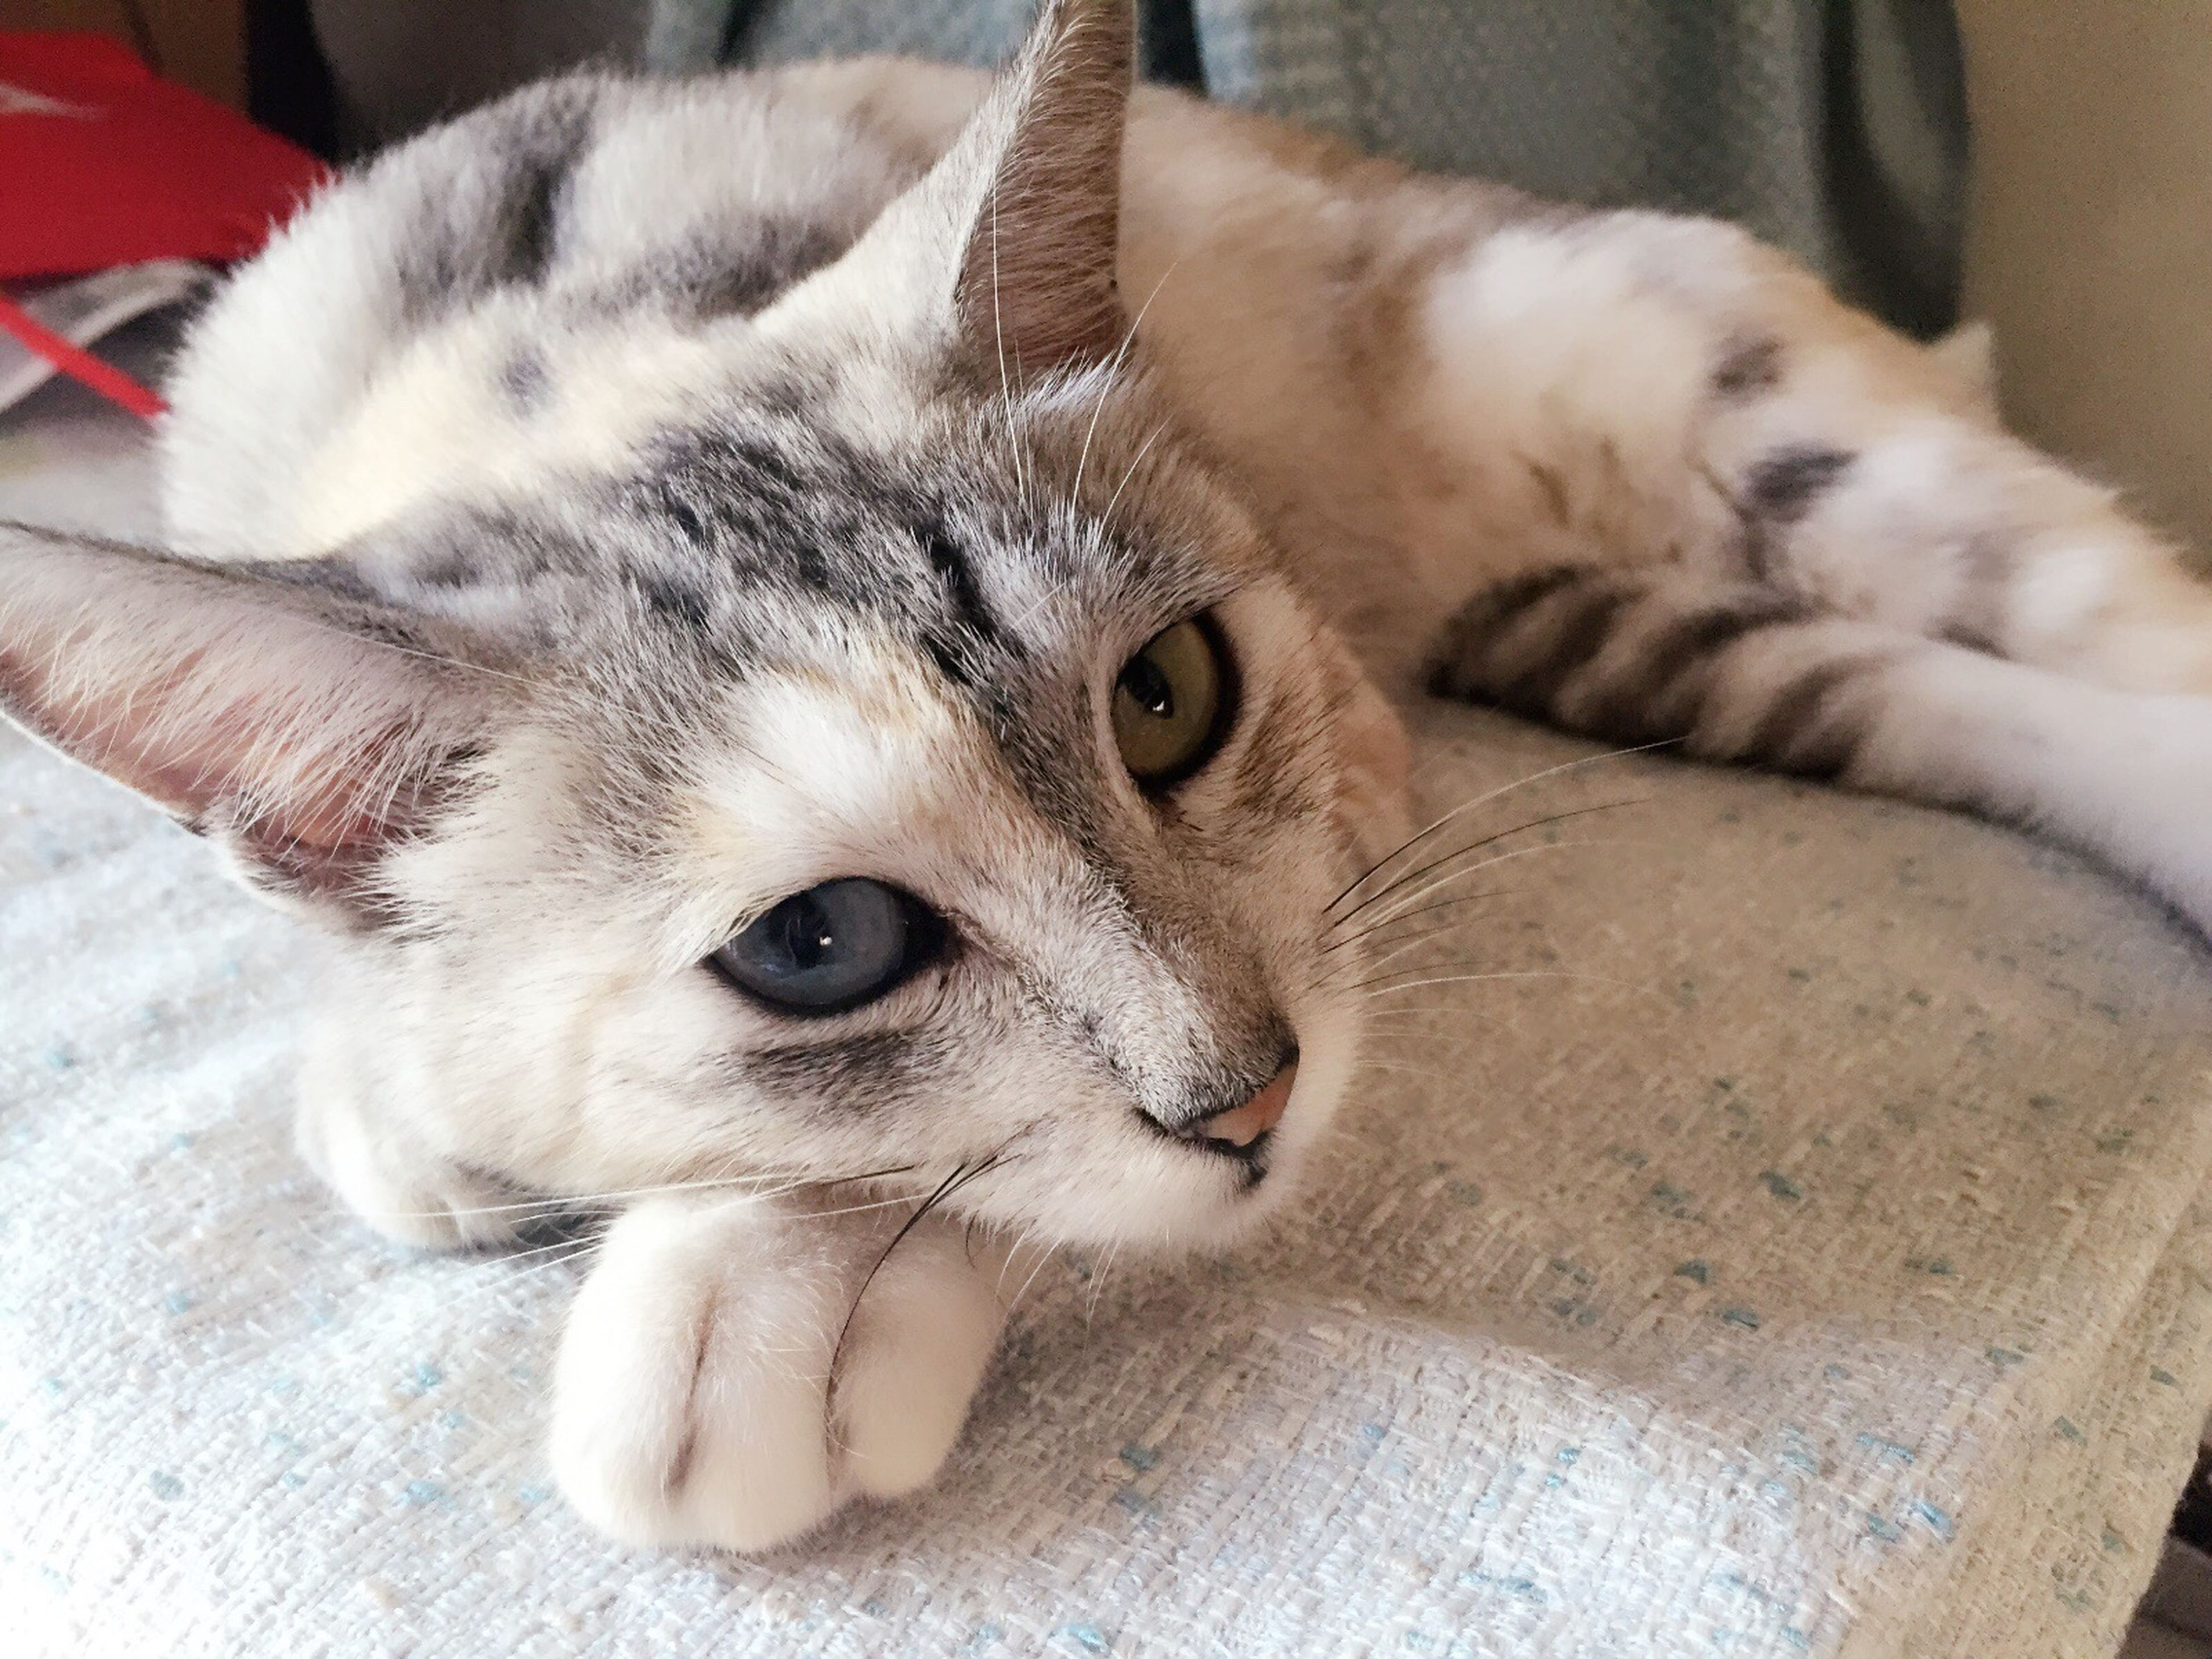 pets, domestic animals, indoors, animal themes, one animal, domestic cat, mammal, cat, relaxation, feline, whisker, looking at camera, home interior, portrait, close-up, lying down, resting, animal head, flooring, high angle view